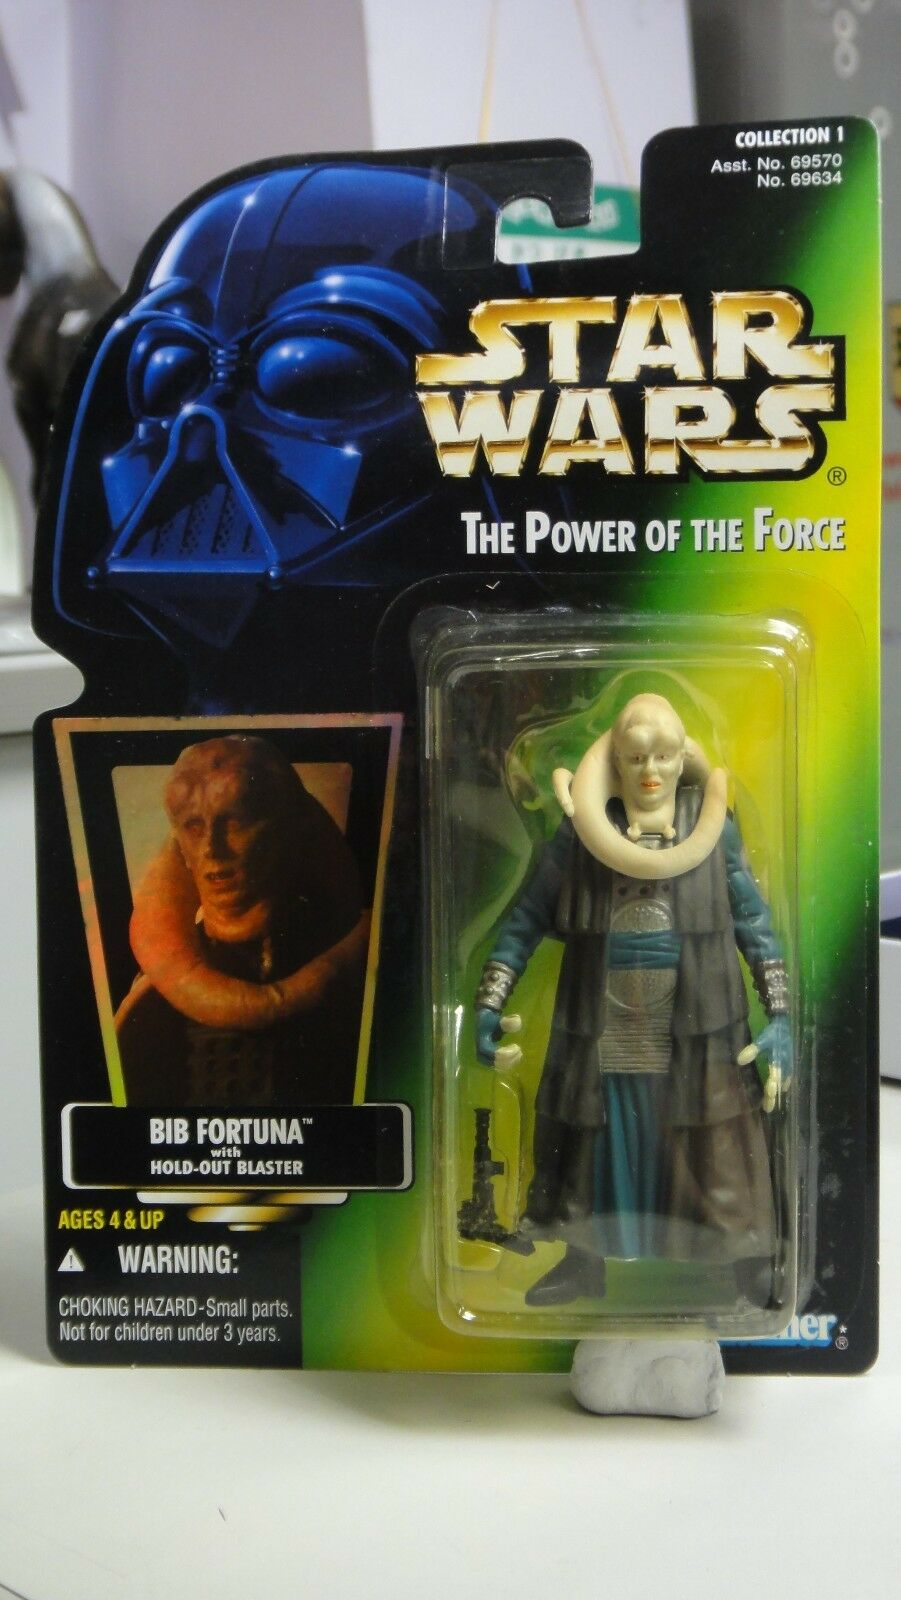 KENNER STAR WARS POTF 1 538955.00 .00 BIB FORTUNA WITH WITH WITH HOLD-OUT BLASTER 69634 302e60